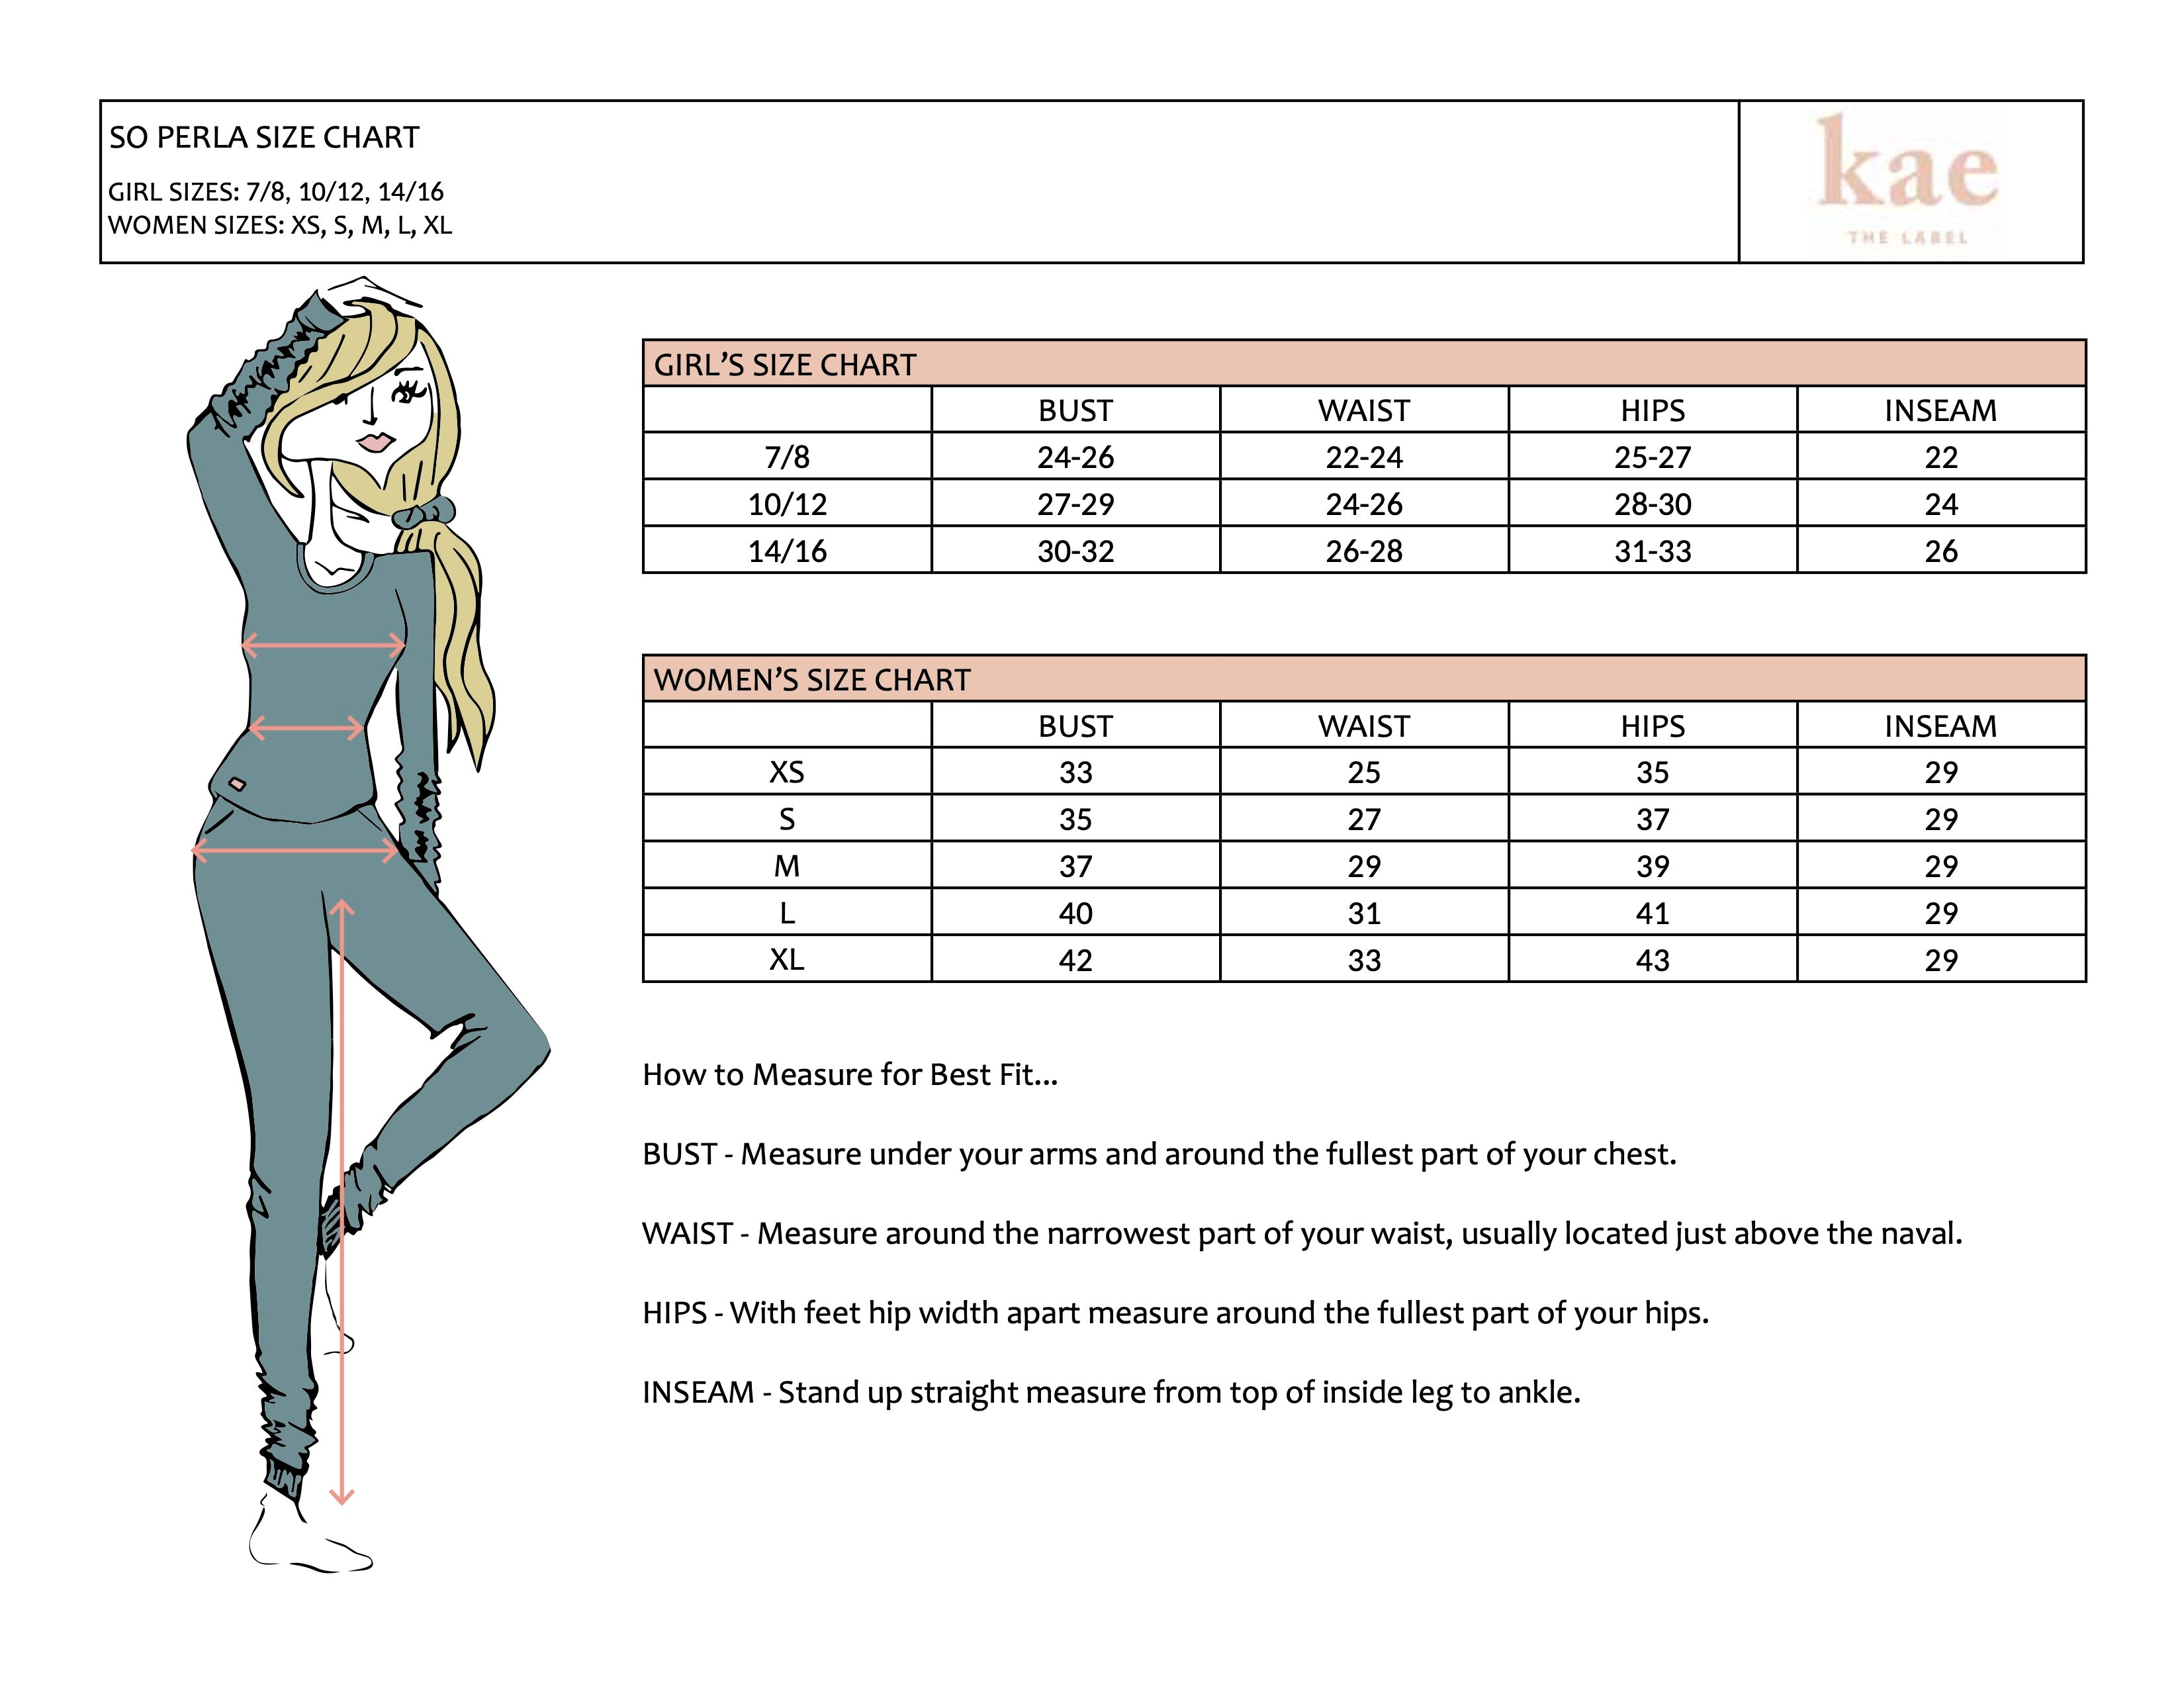 Kae the Label Size Chart